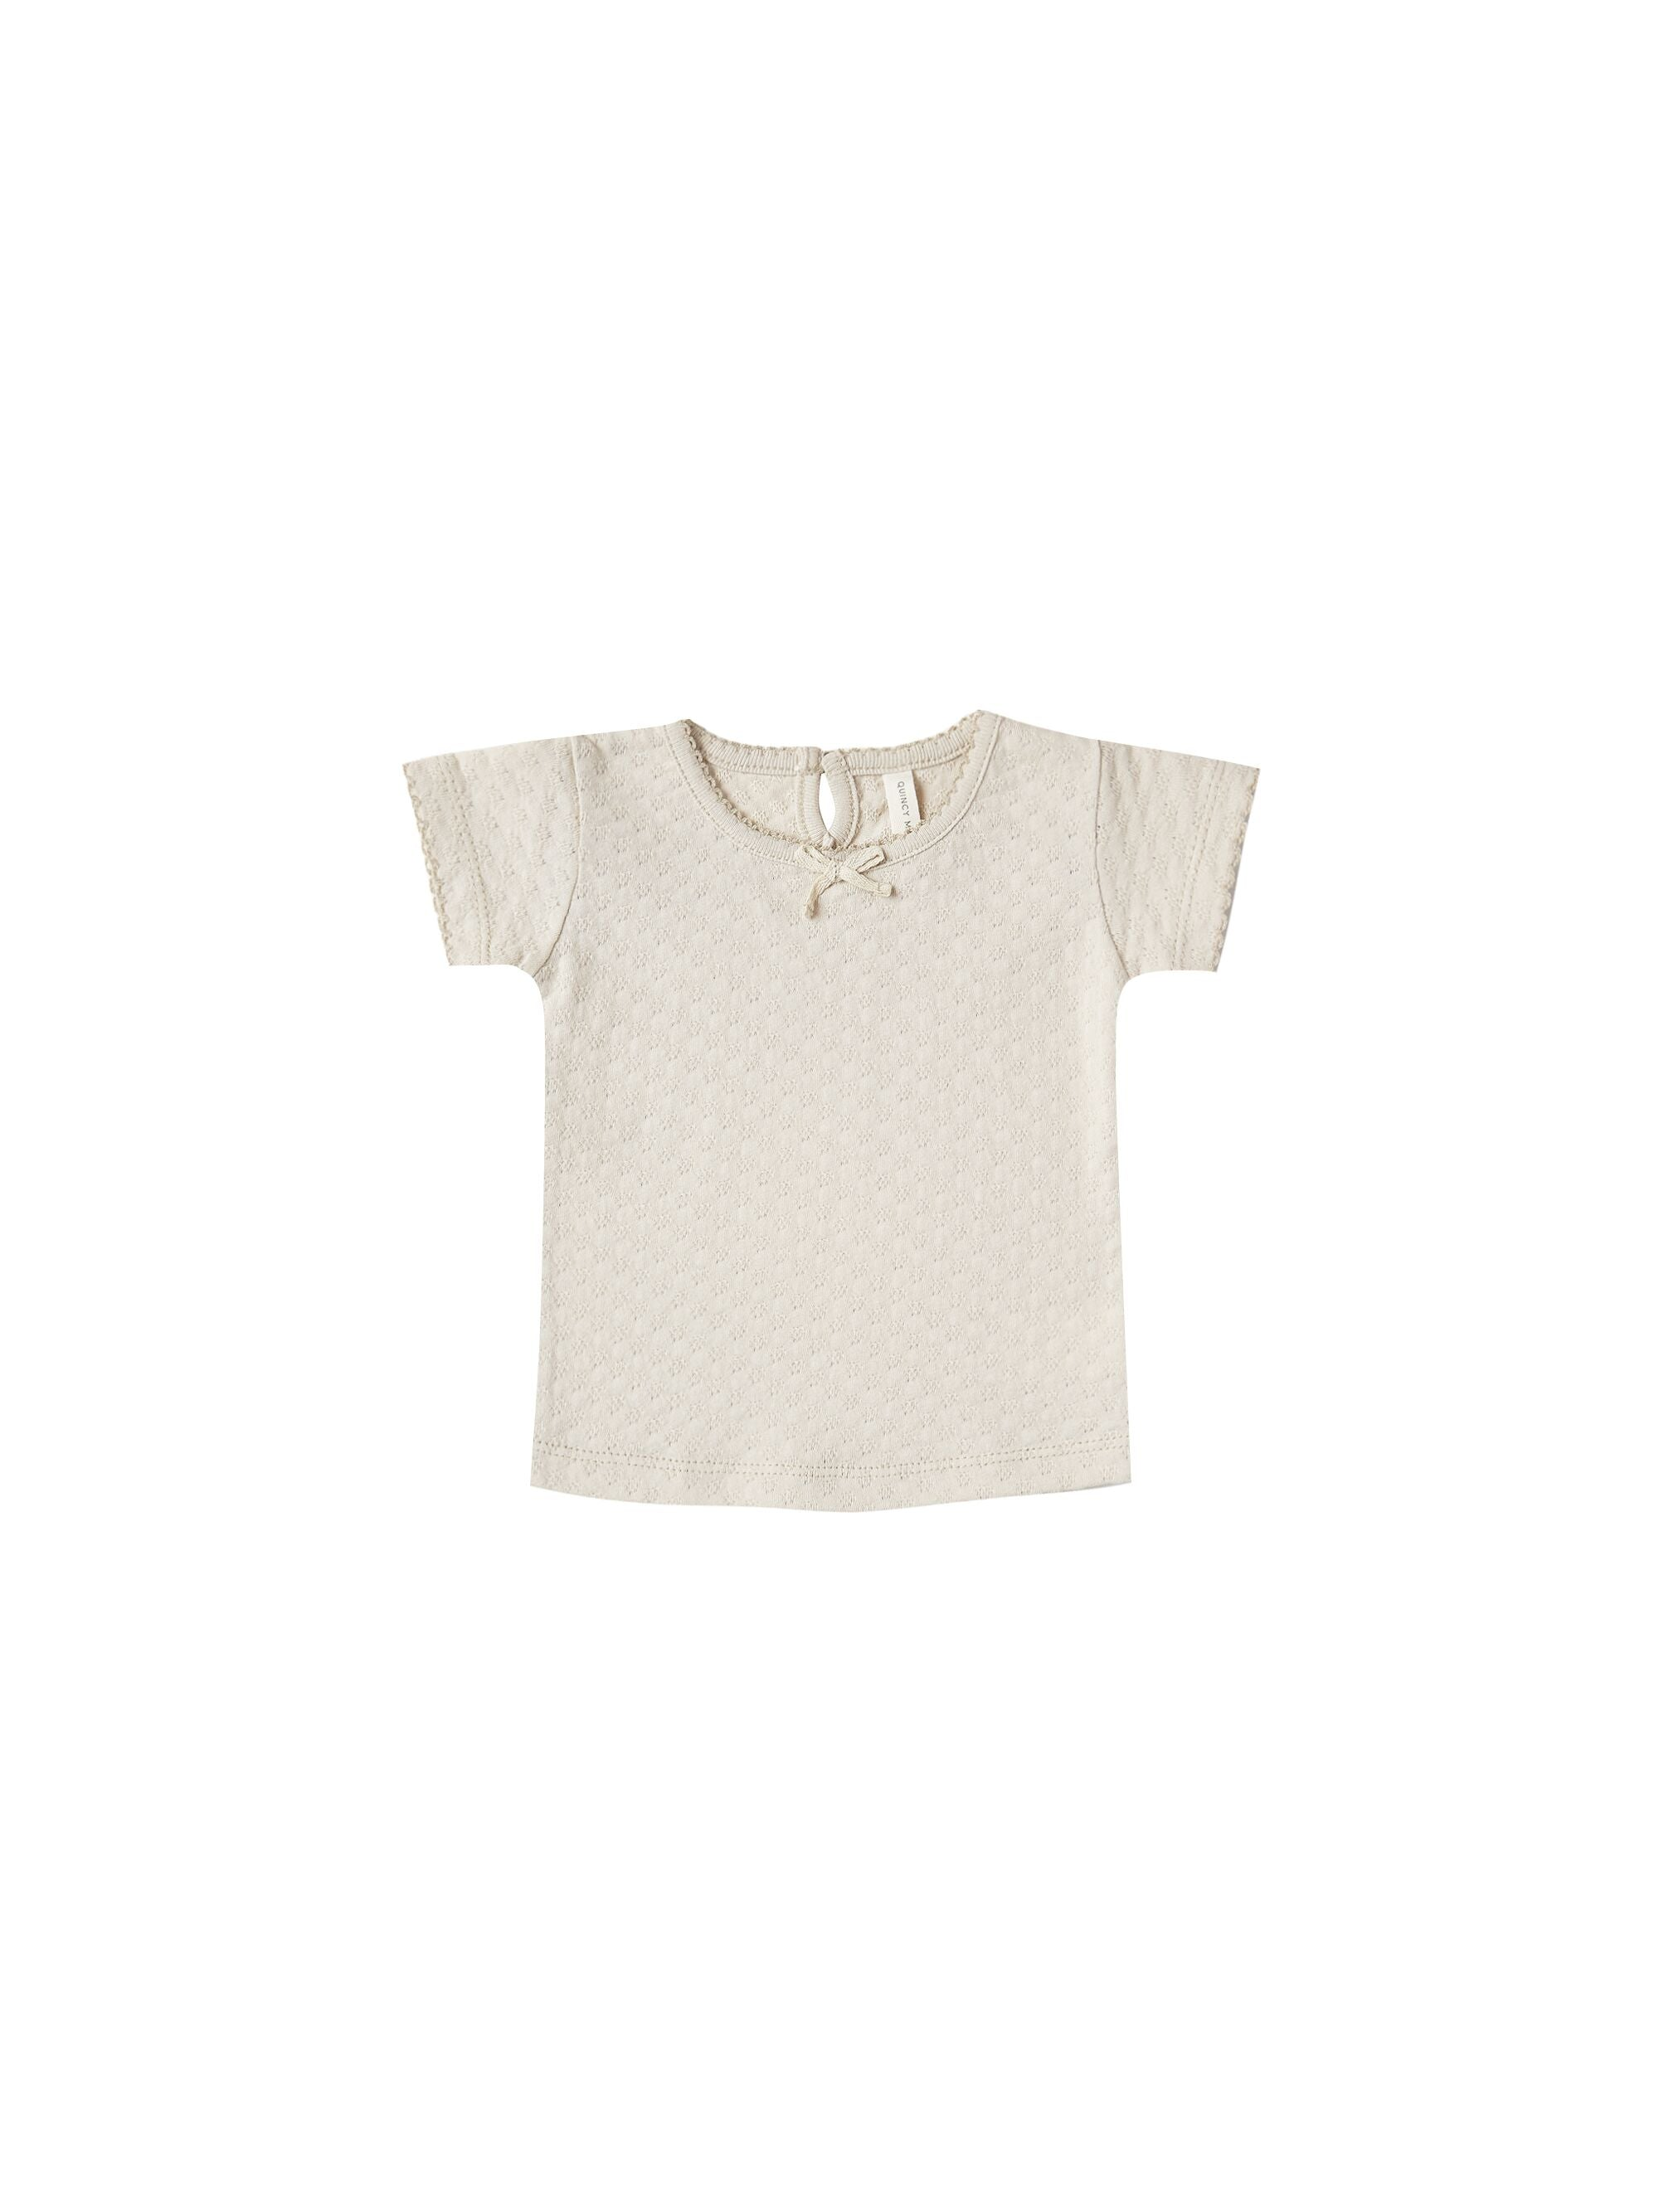 Quincy Mae Organic Pointelle Tee, Natural